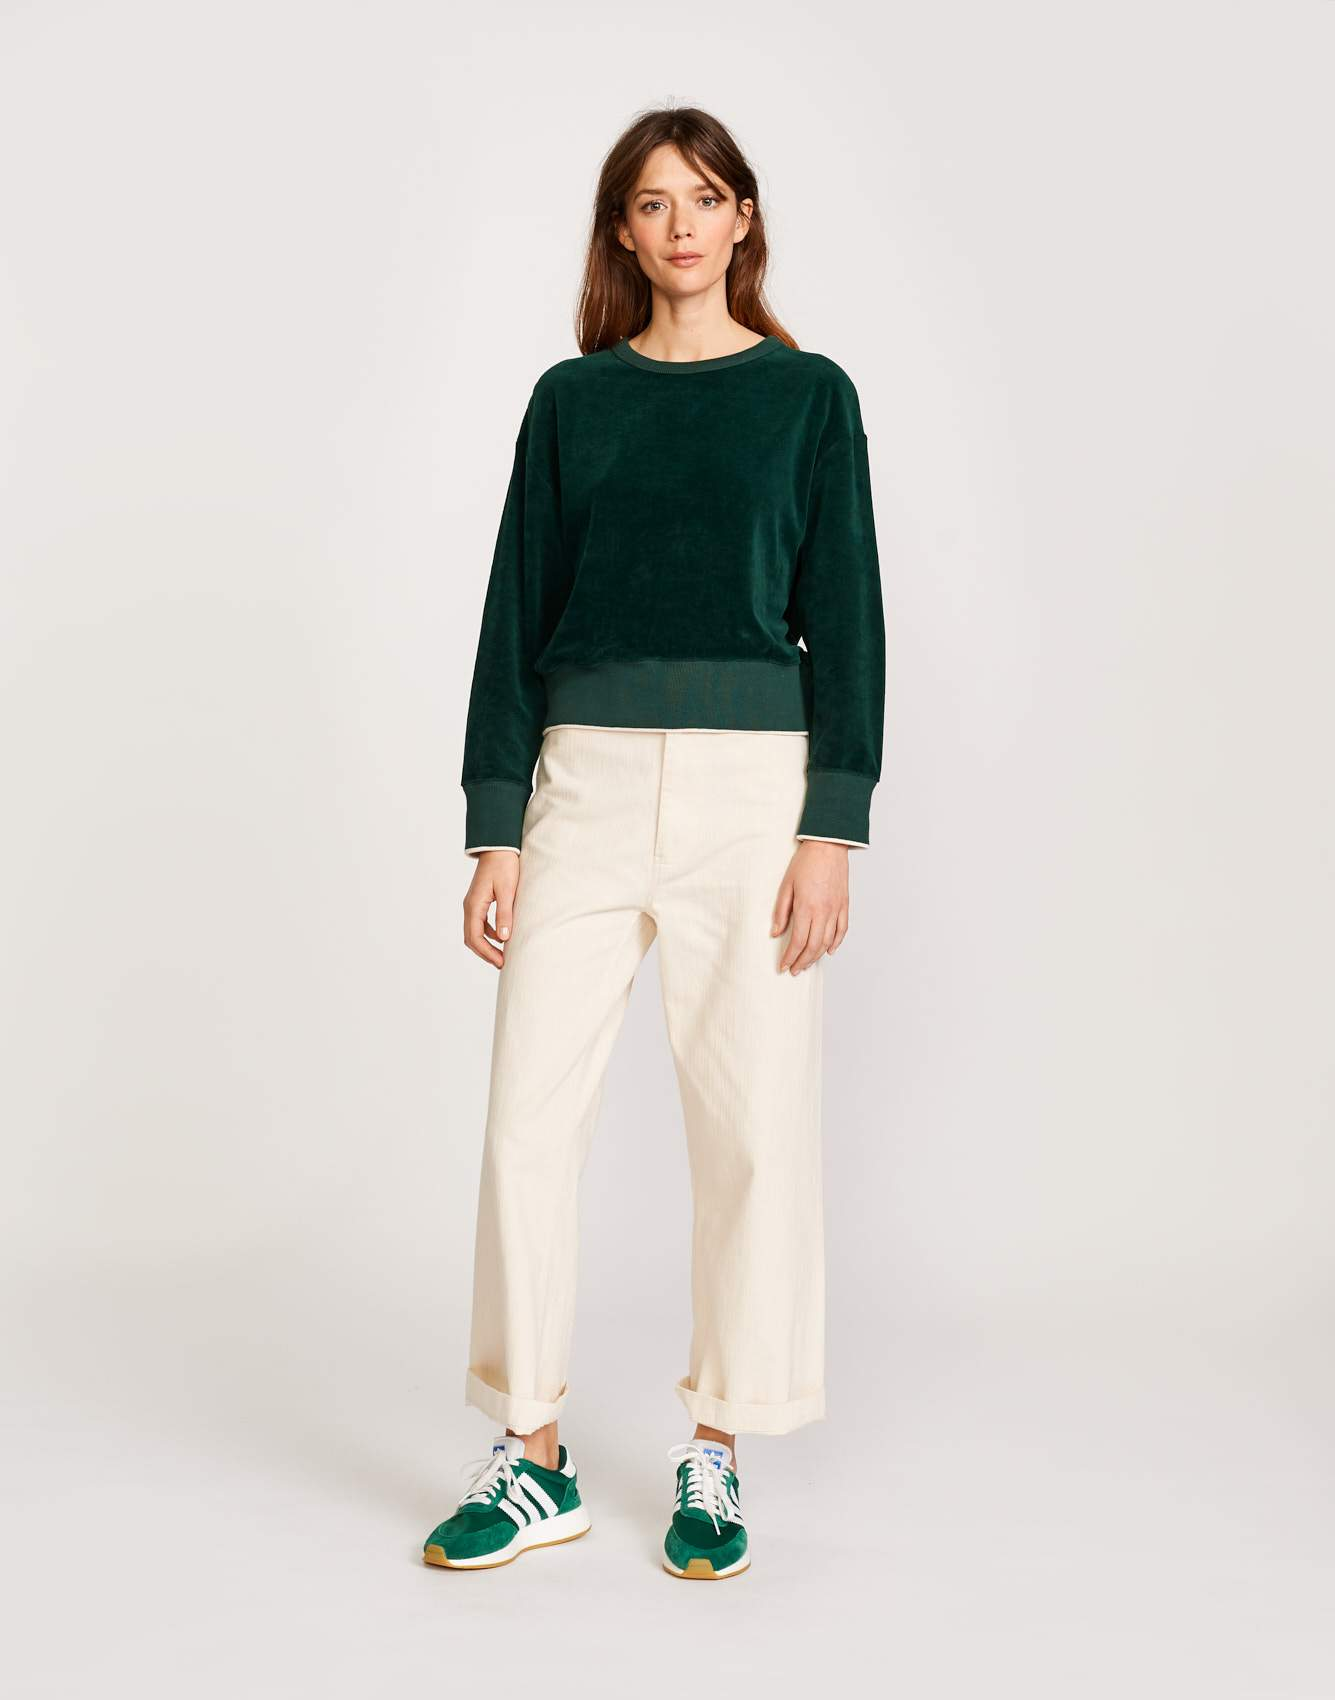 Bellerose green velvet sweatshirt for women